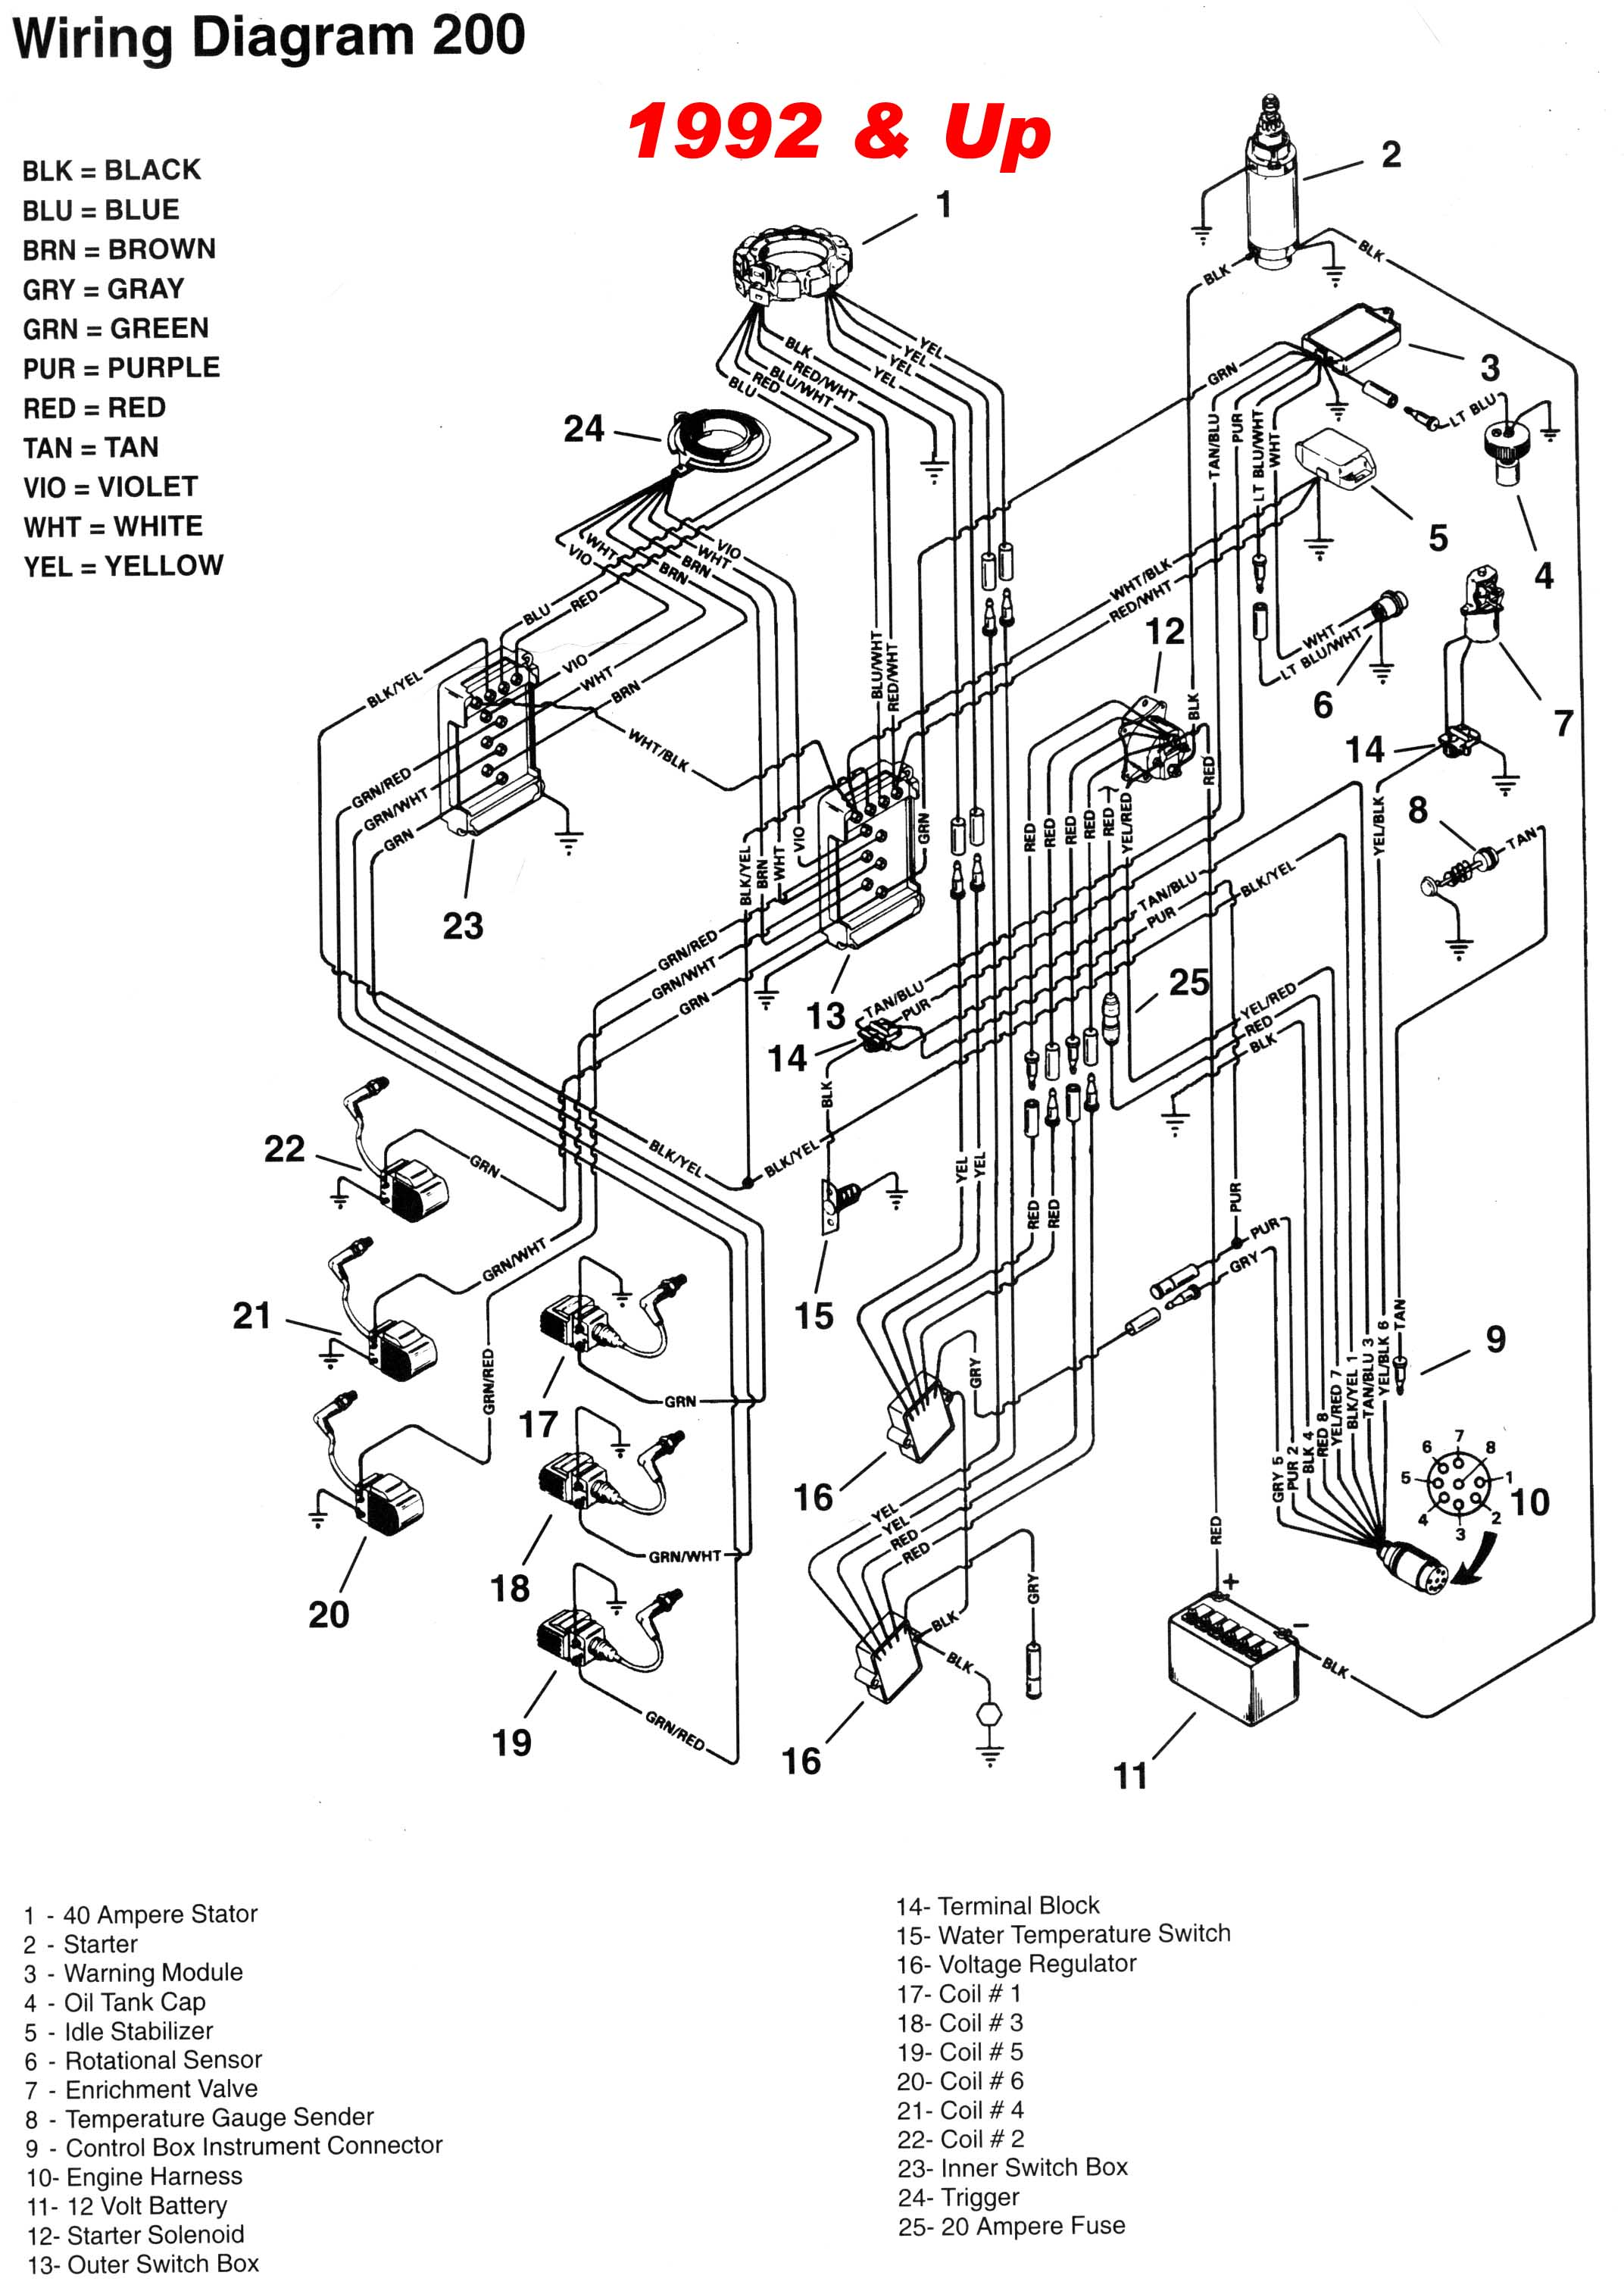 mercury_92up_200_wiring wiring diagram mercruiser 30 simple wiring diagram